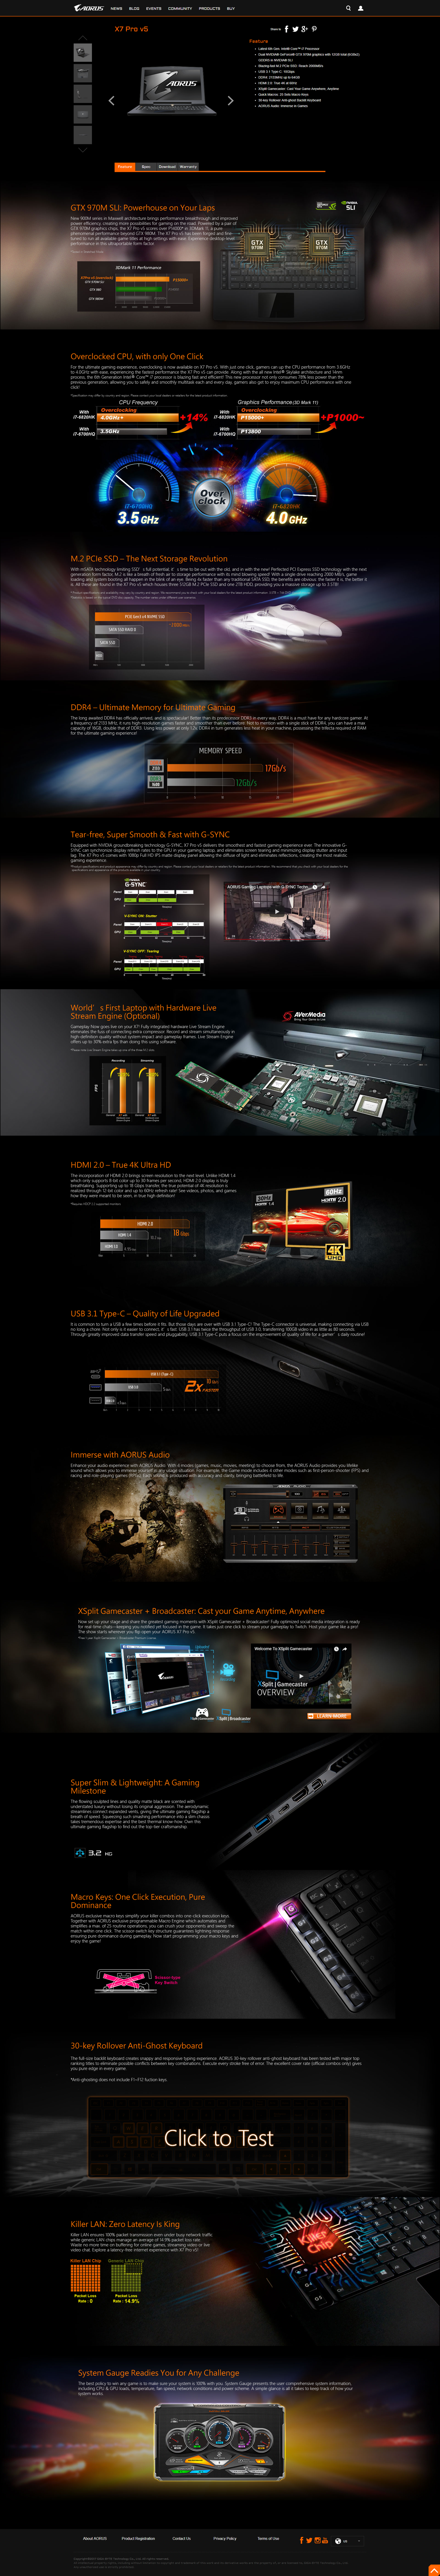 screencapture-aorus-product-detail-php-2018-05-24-16-49-50.png